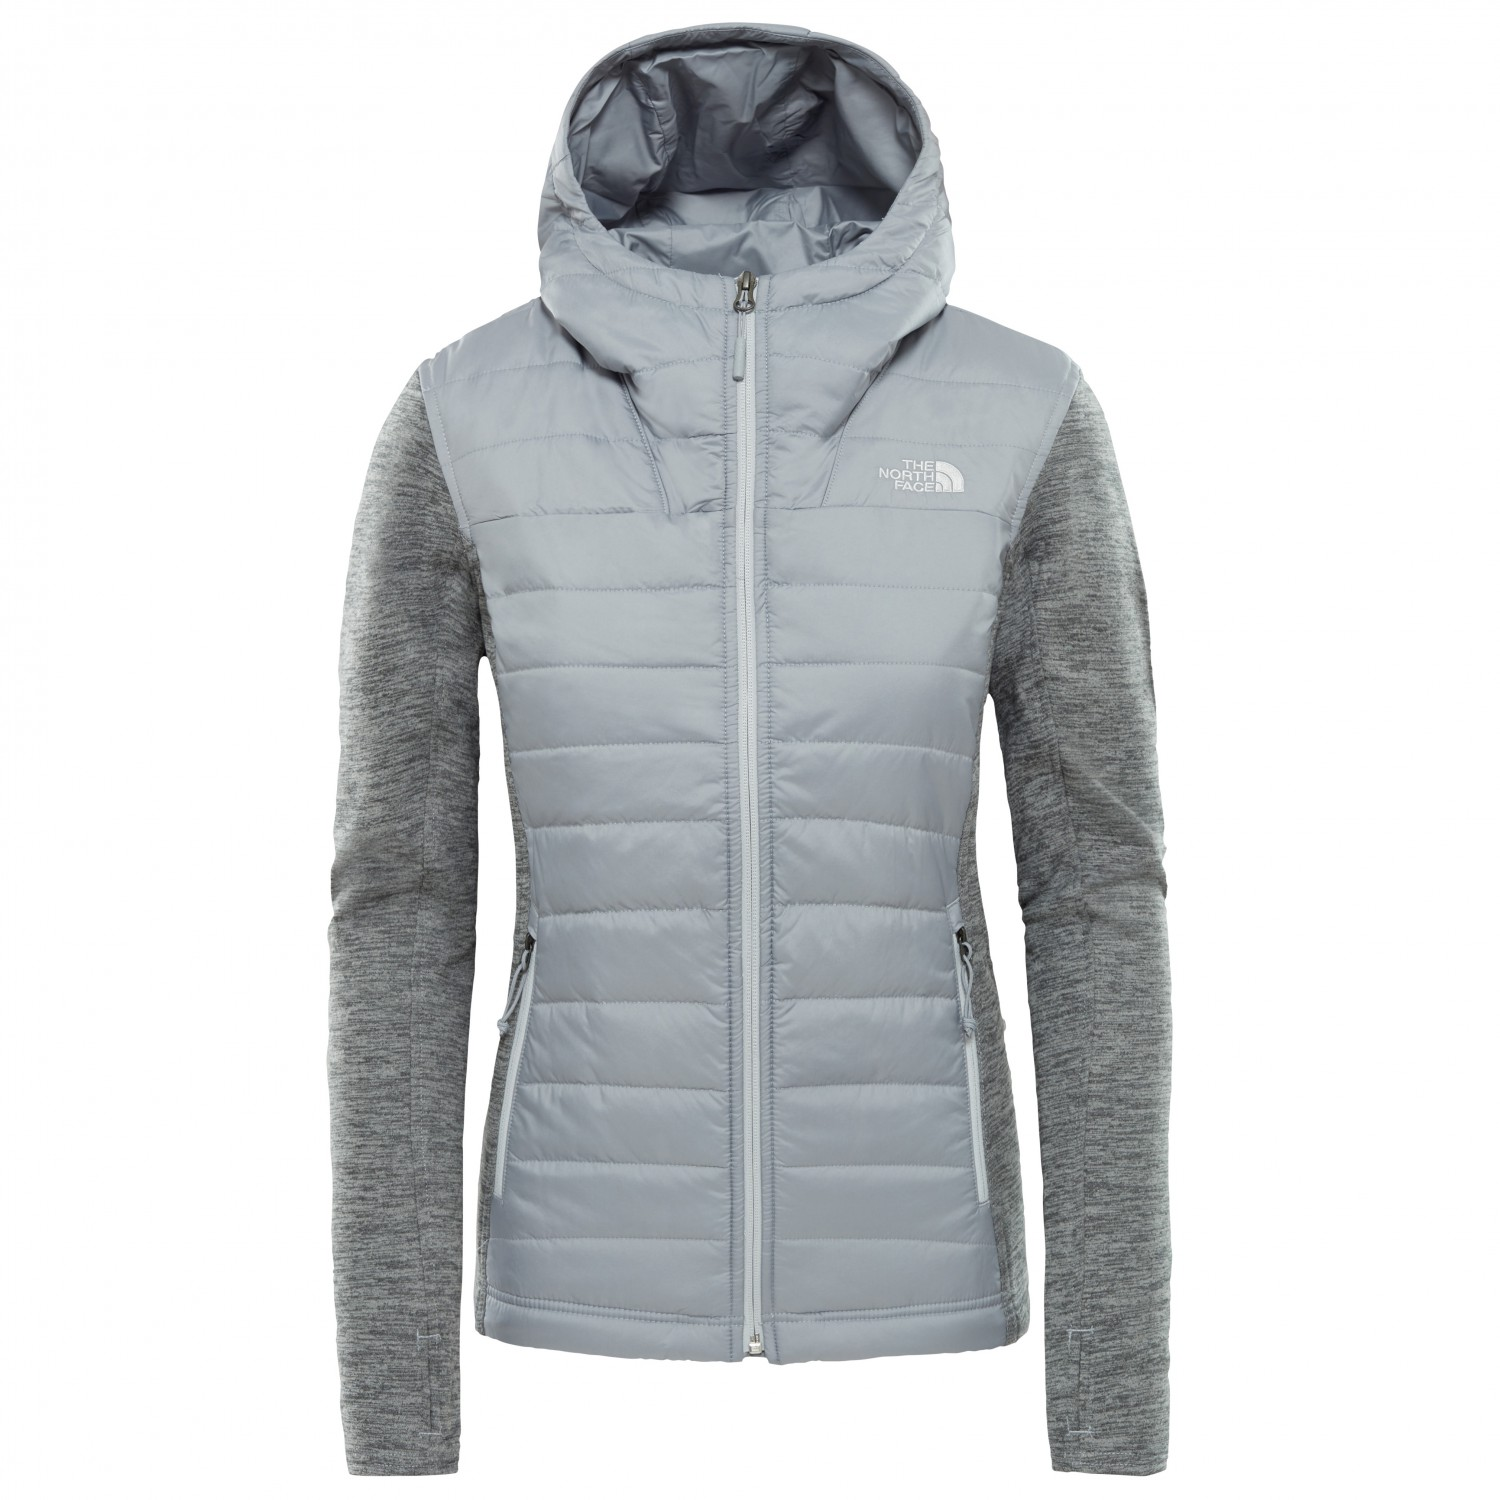 a35ba499a The North Face Mashup Hoodie - Synthetic jacket Women's | Buy online ...